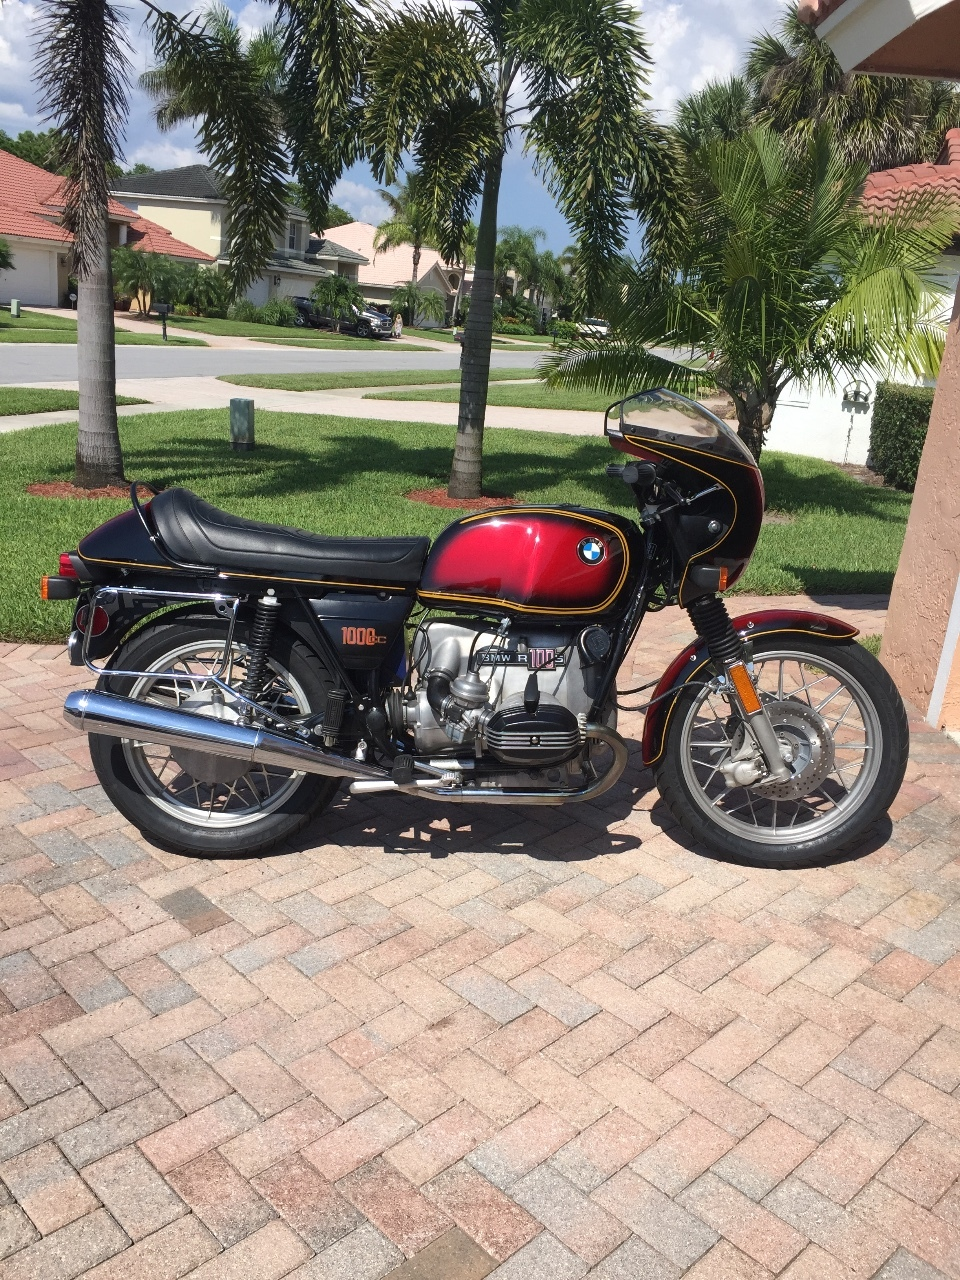 R 100 Rs For Sale - BMW Motorcycles - Cycle Trader